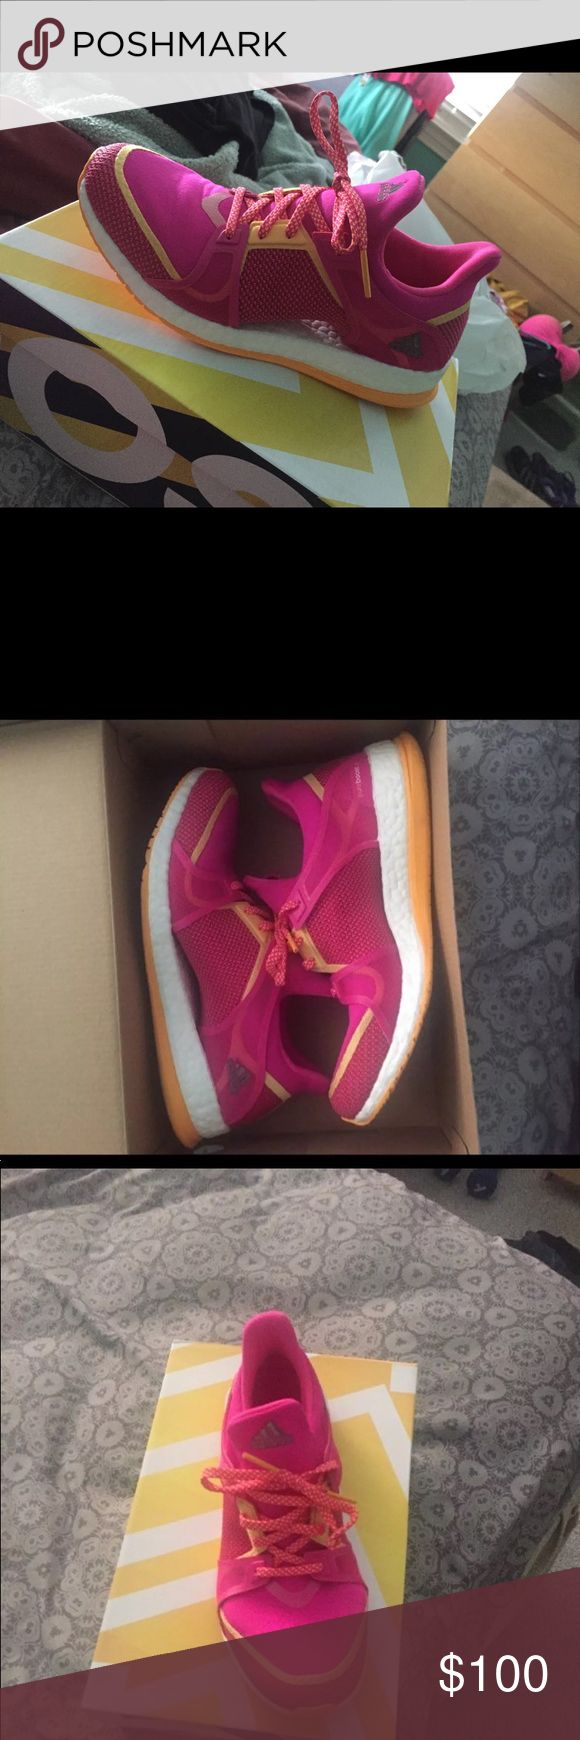 Adidas pure boos Adidas Pure Boost Running Shoes (pink and yellow) worn once Size 8 Box available. Will take best offer adidas Shoes Athletic Shoes